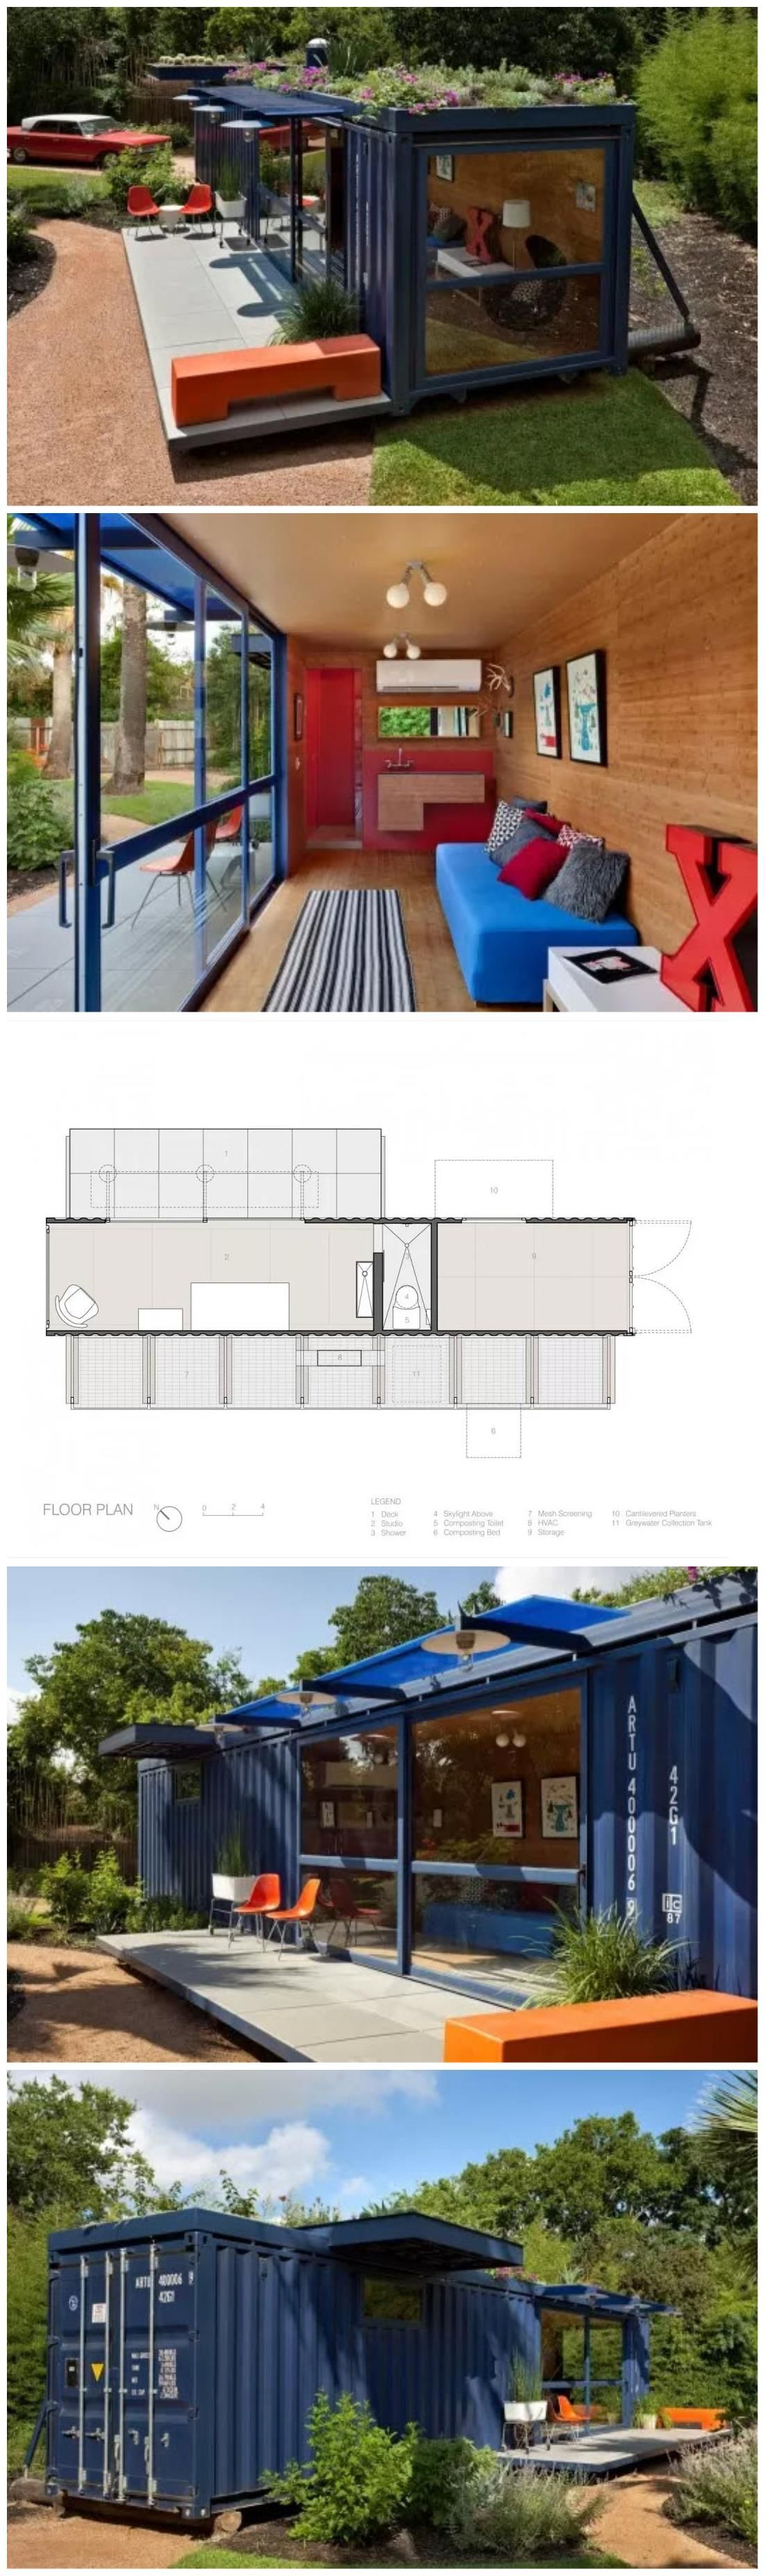 Best Kitchen Gallery: Amazing Container Homes Solar Plants And House of Solar Shipping Container Home on rachelxblog.com